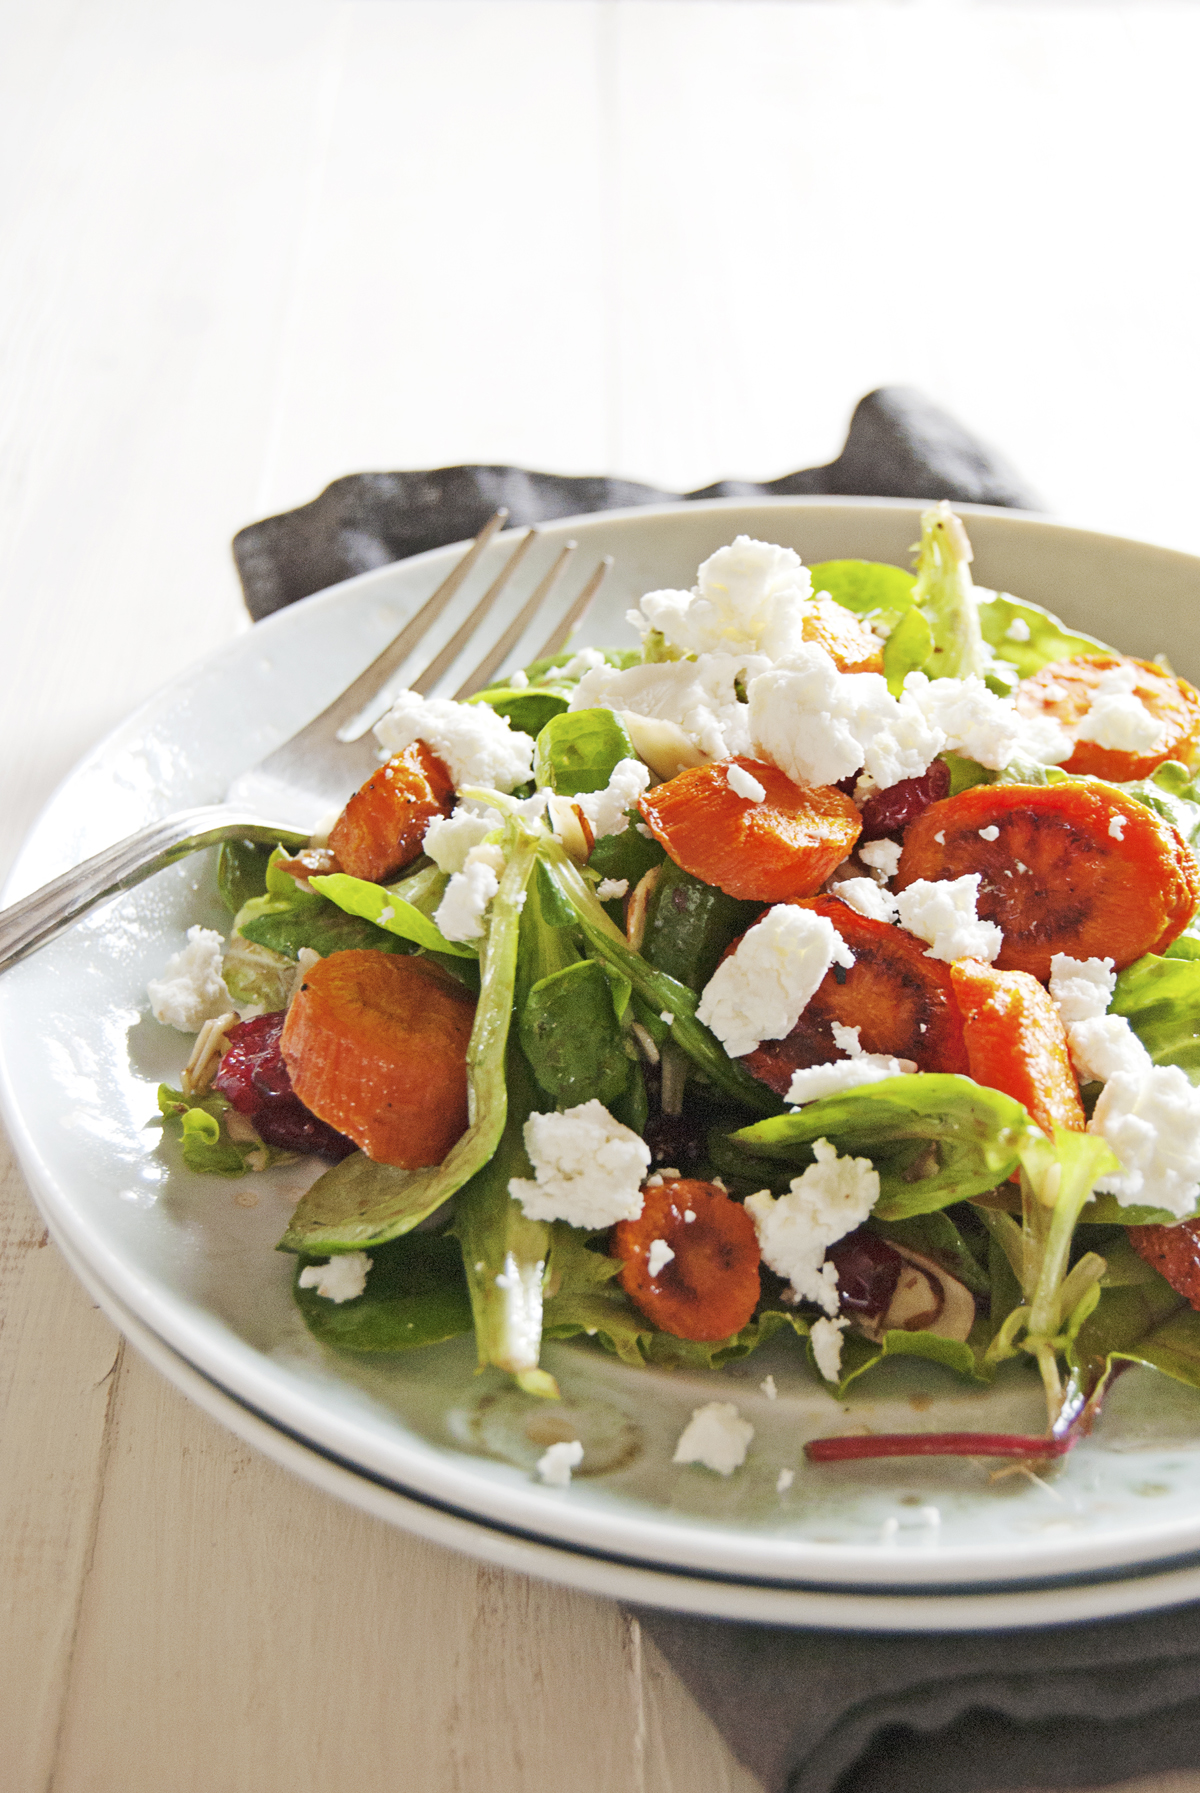 Say hello to the fall with this roasted carrot salad, featuring a balsamic vinaigrette, greens, and crumbled goat cheese.